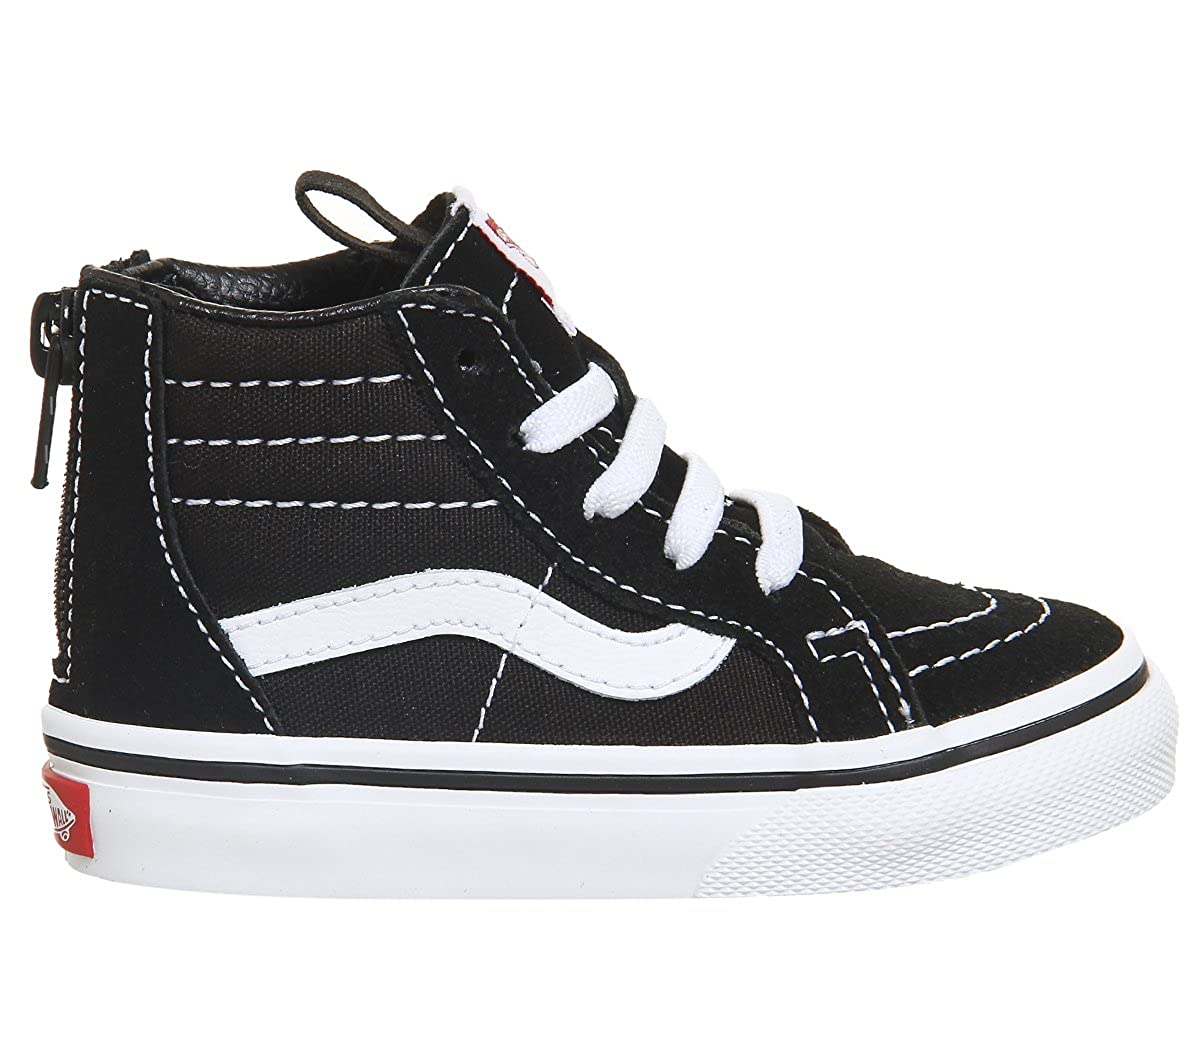 Vans High-Top Sneaker Sneaker High-Top TD Sk8 Schwarz e2f958